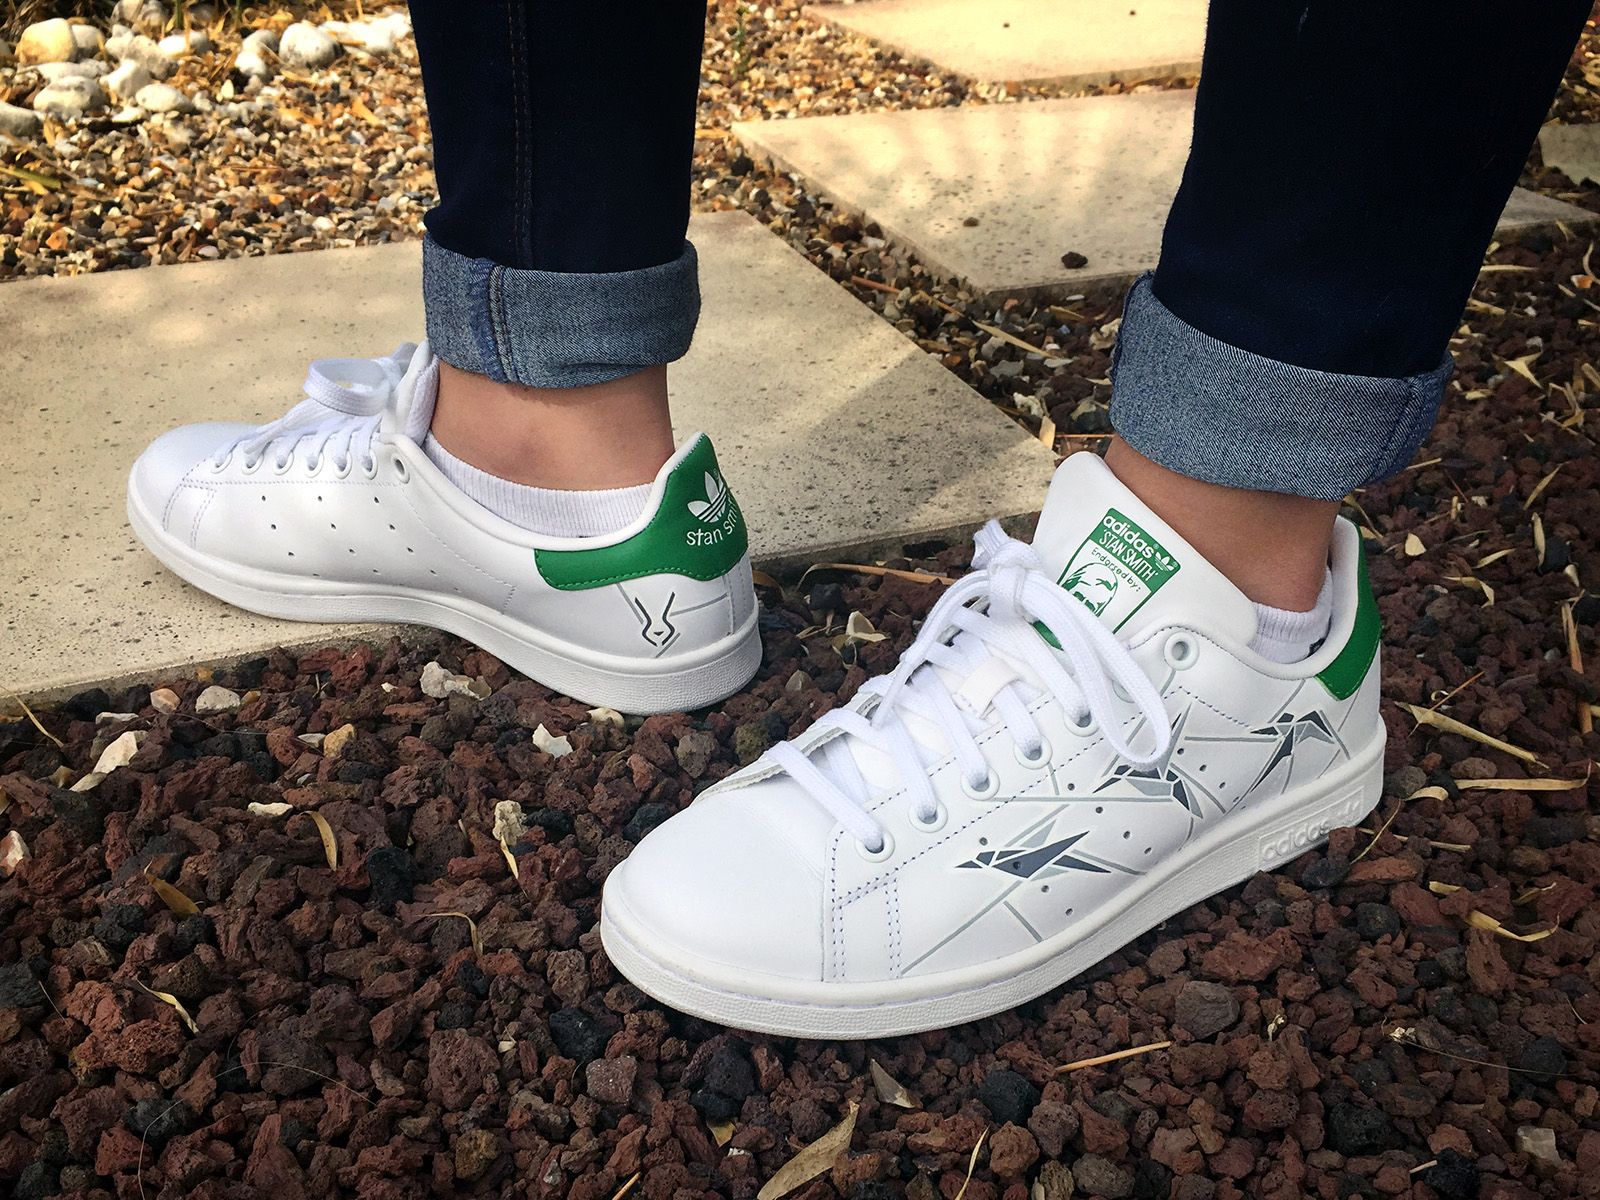 Custom #StanSmith by LBP